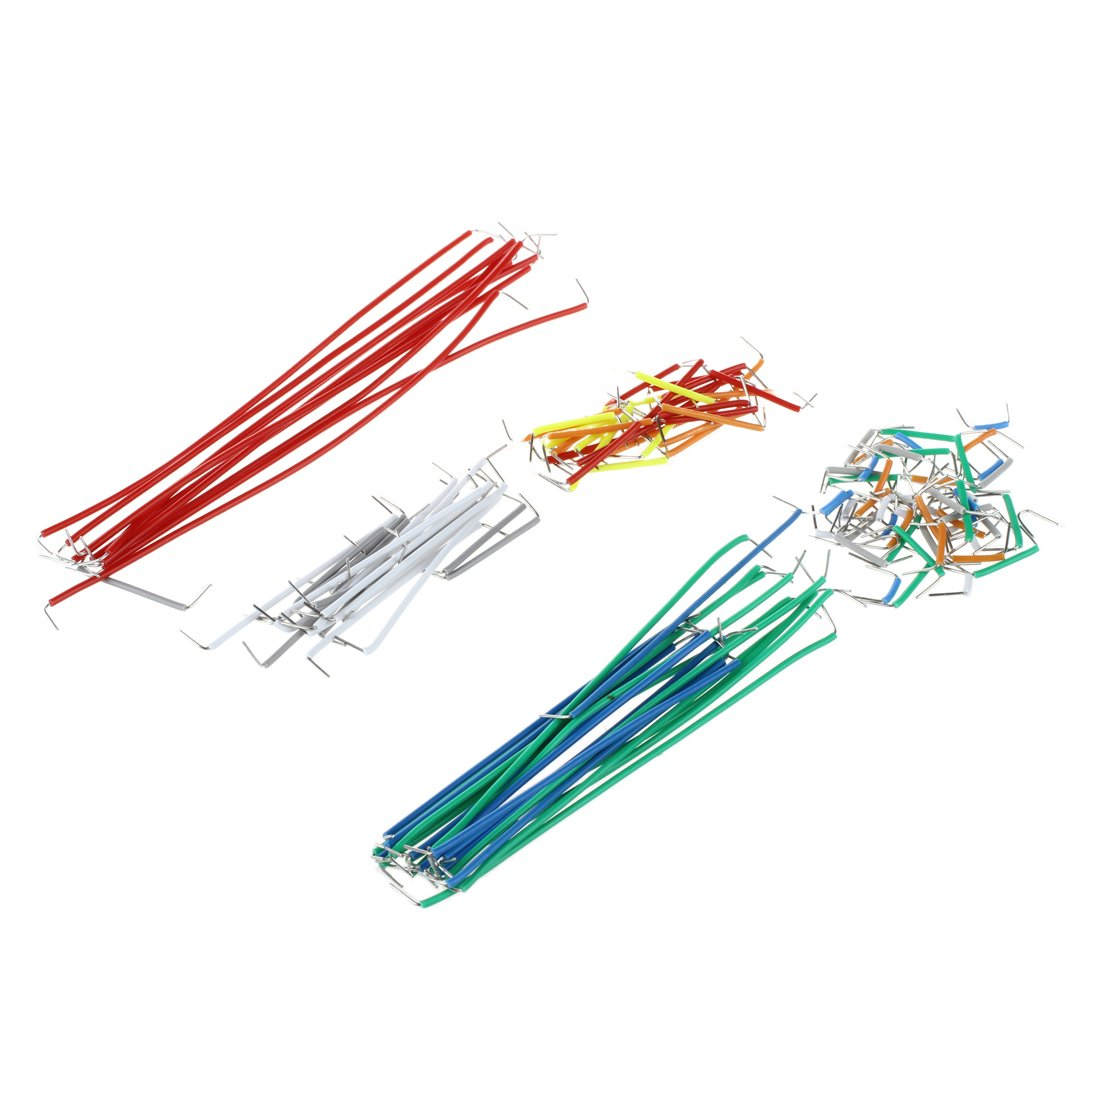 Sodialr 140pcs U Shape Solderless Breadboard Jumper Cable Wire Kit Printed Circuit Board China Gua For Arduino Shield